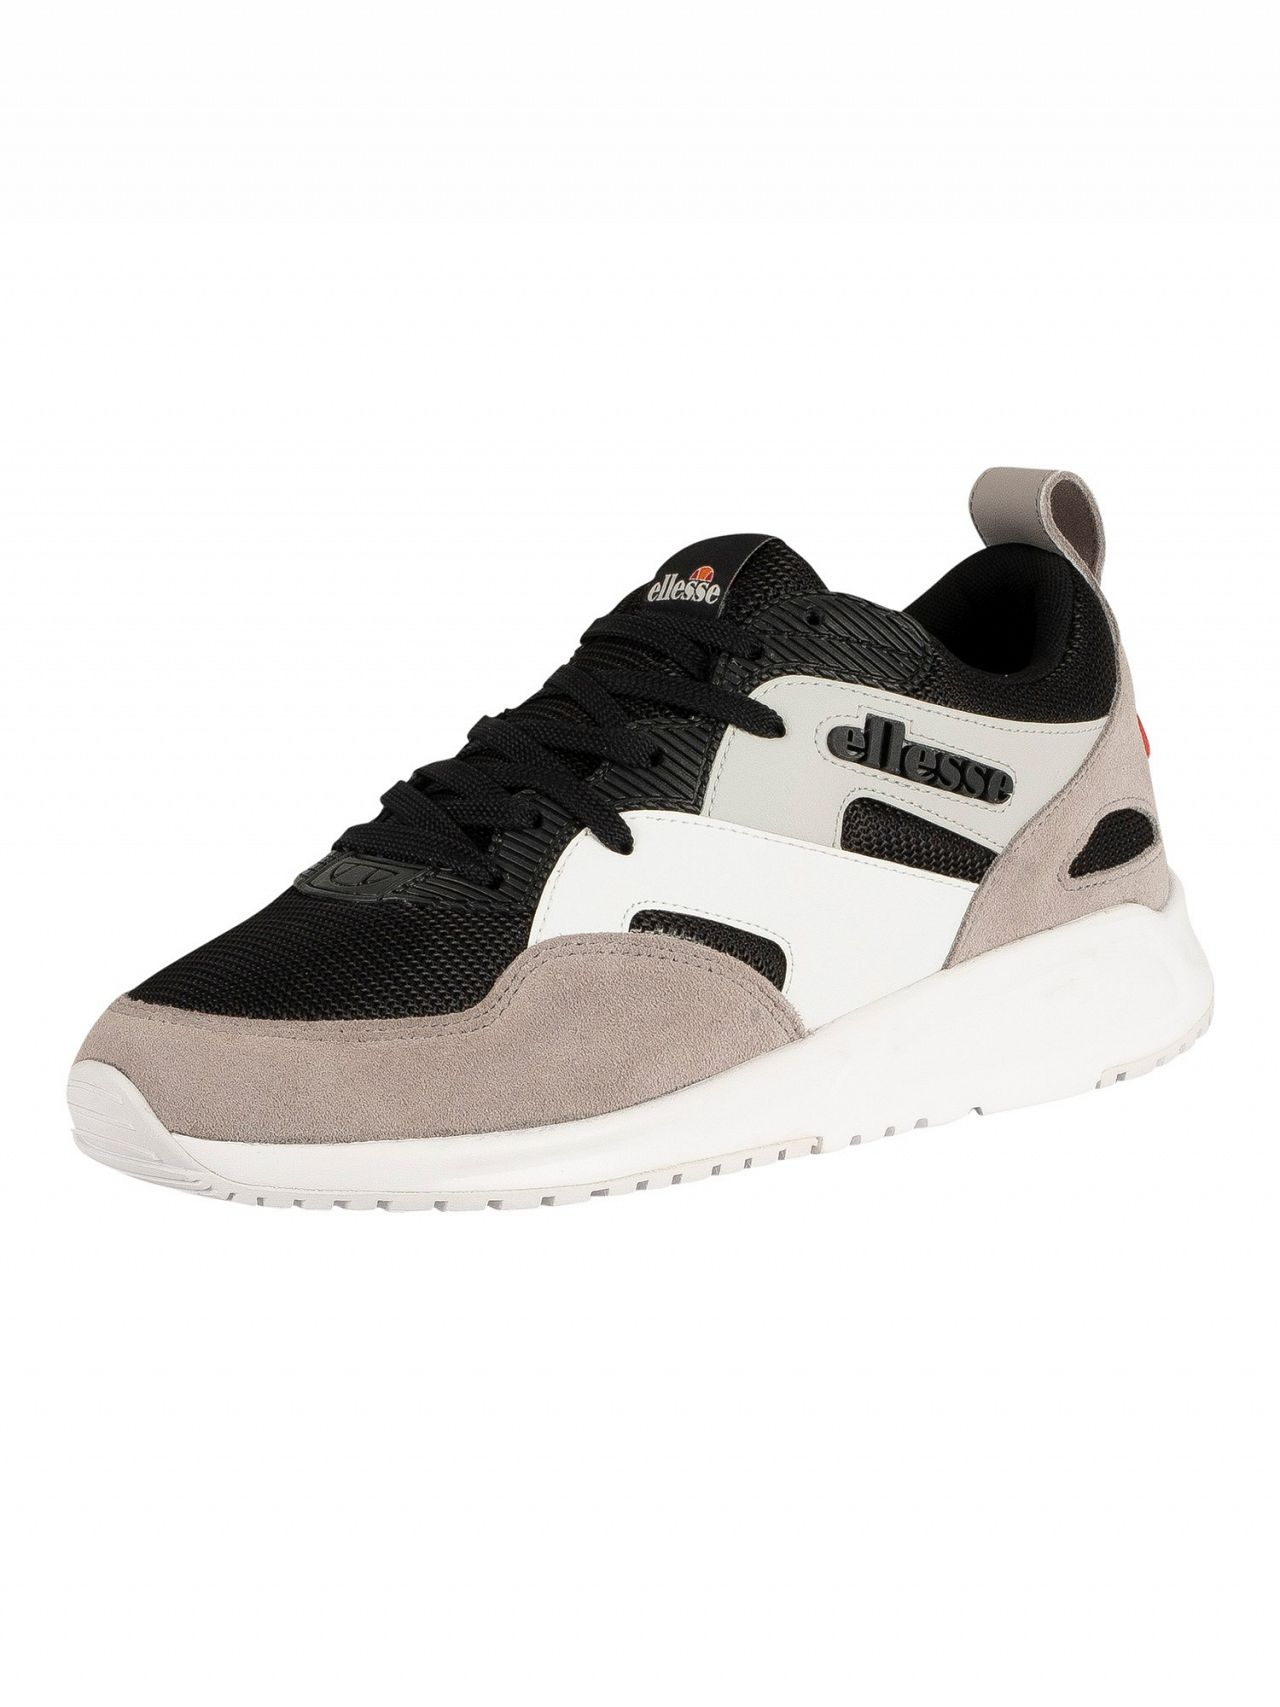 86a9938b2 Ellesse Black/Grey/White Potenza Suede Trainers | Standout